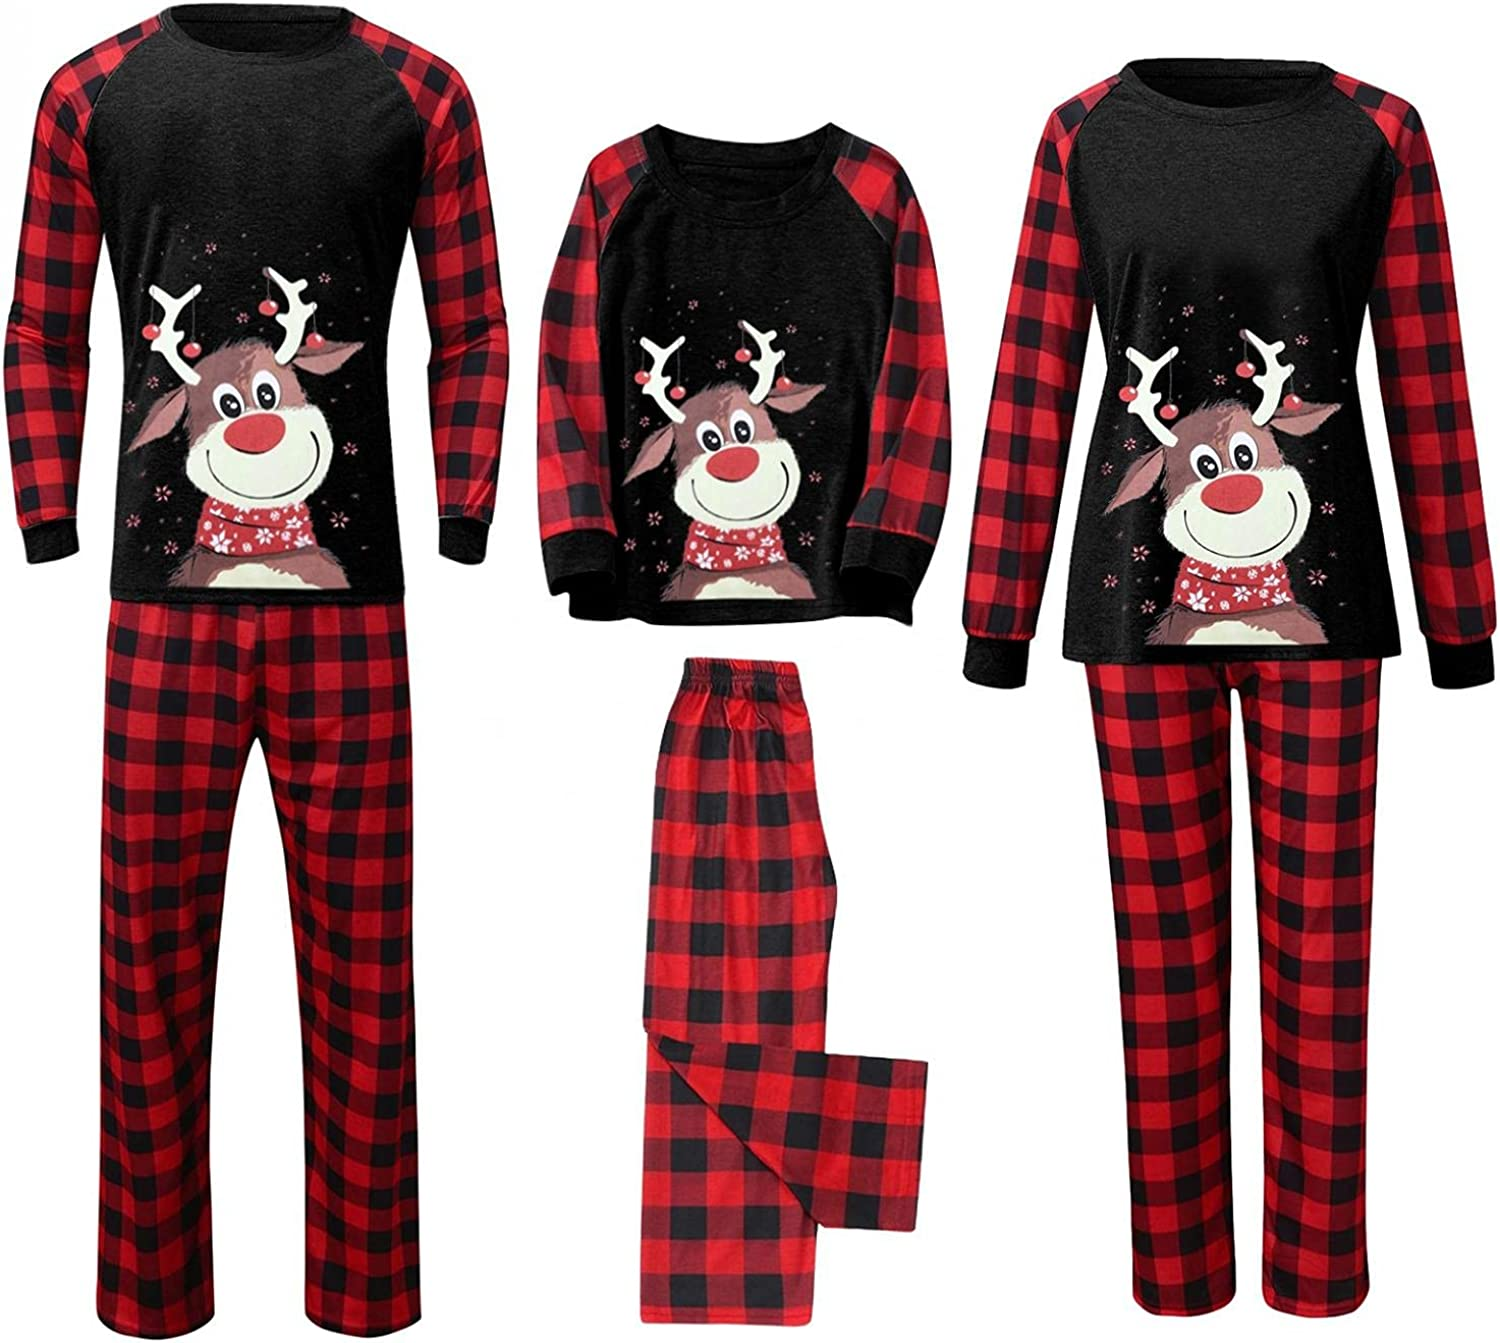 Men Women's Baby Product 2-Piece Family Matching High material Holiday Jammies Pajama